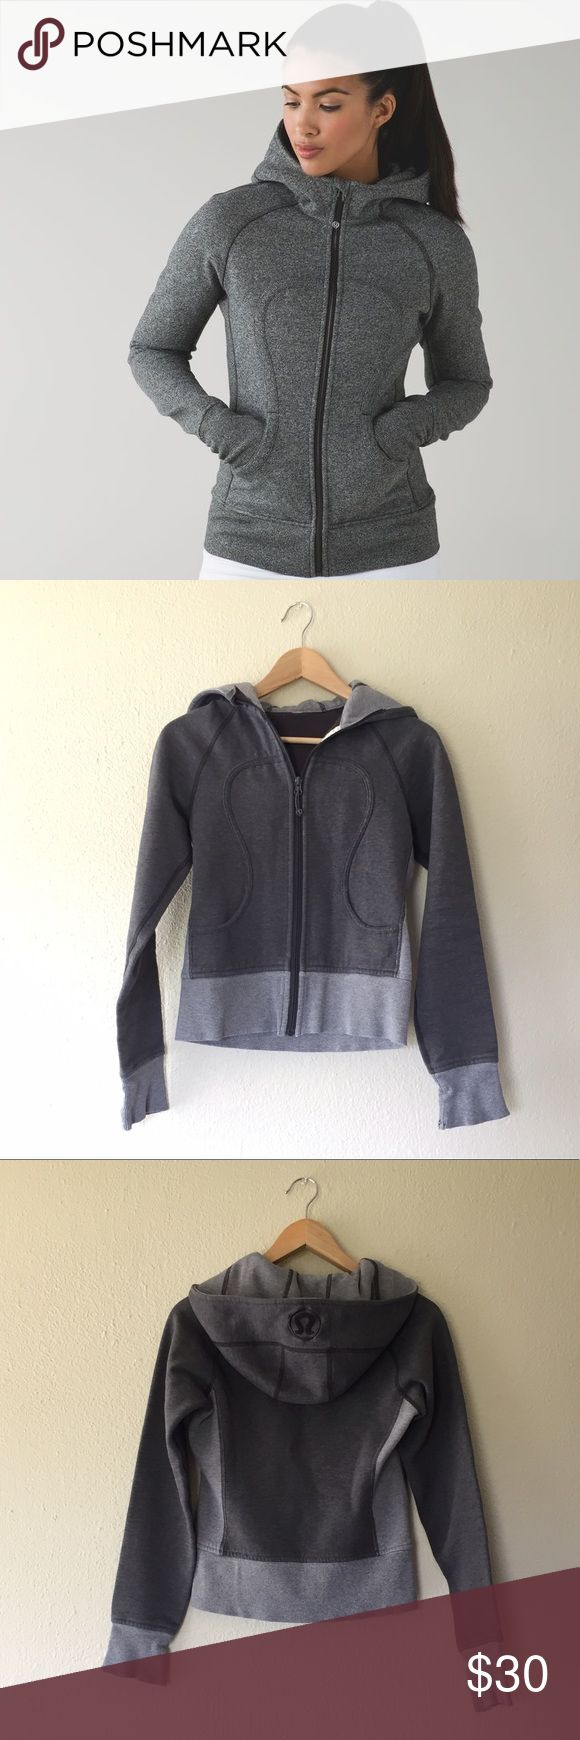 Lululemon Scuba Hoodie Super well loved but no less awesome grey scuba hoodie from Lululemon.   This sweater does show some signs of wear, especially around the sleeves (see picture). Priced to sell, but make an offer! lululemon athletica Tops Sweatshirts & Hoodies